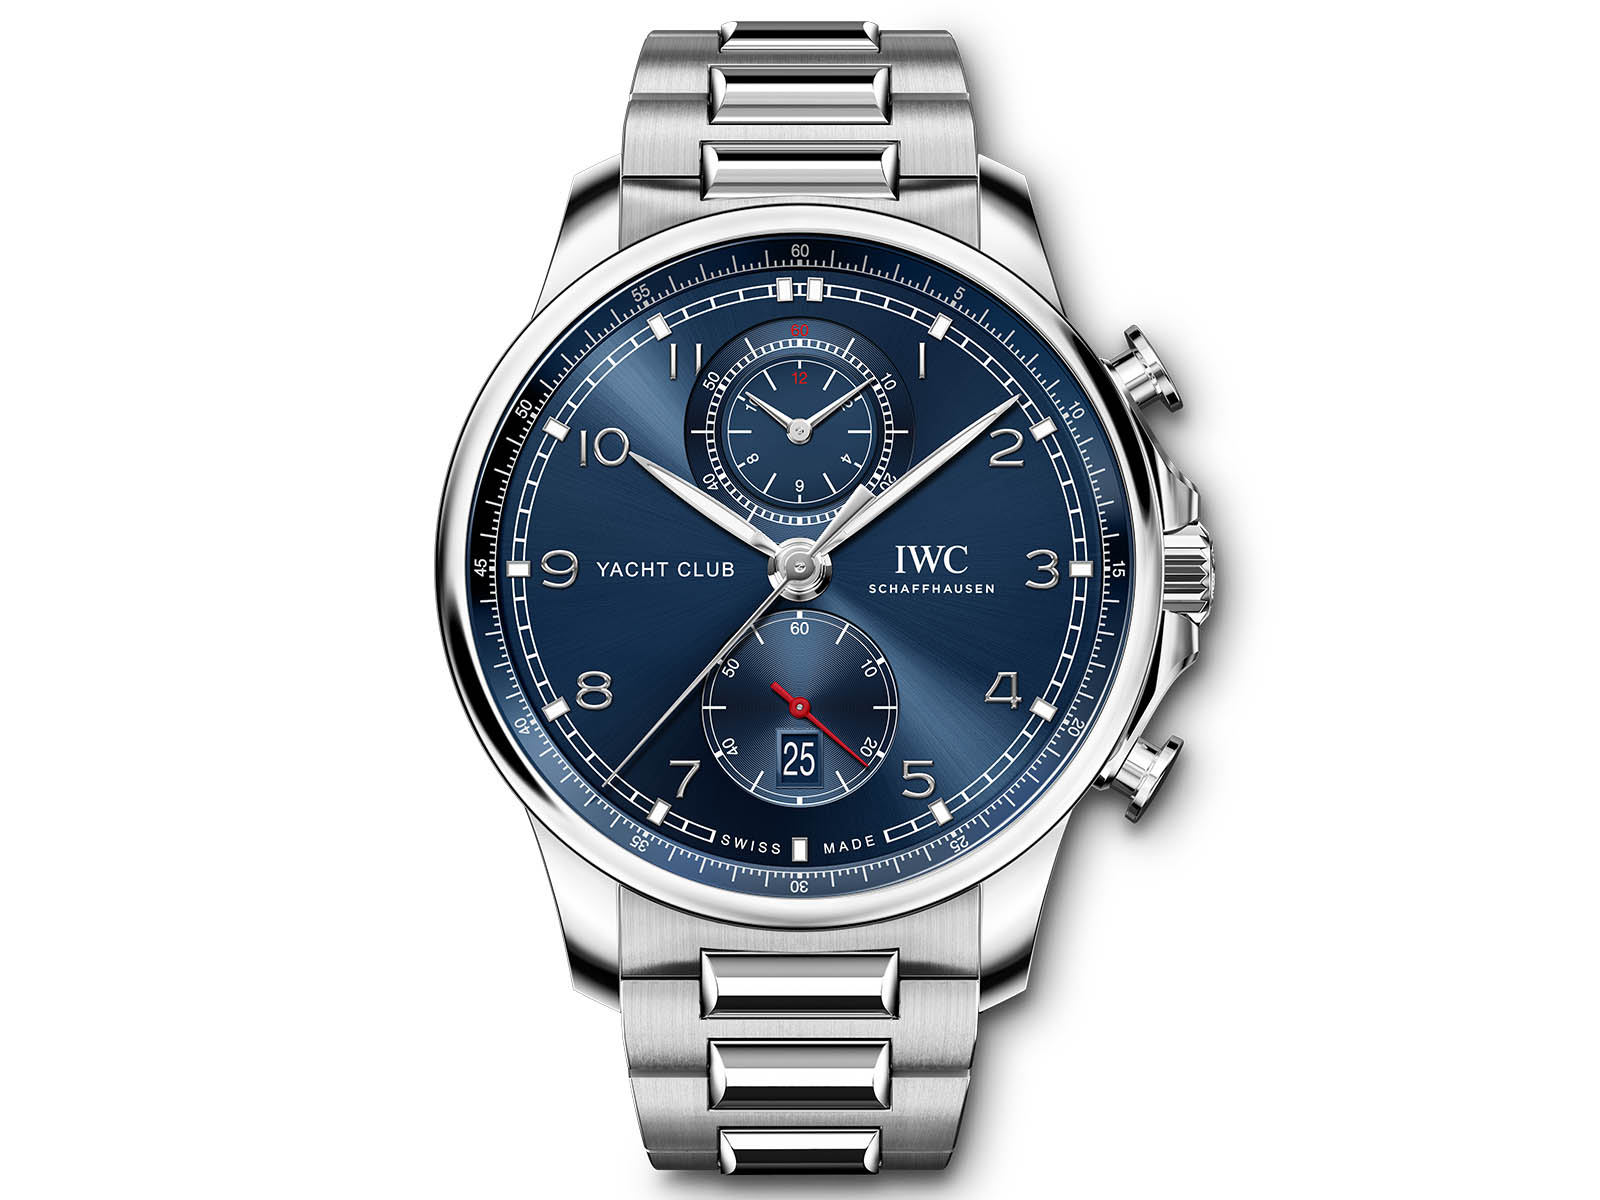 iw390701-iwc-schaffhausen-portugieser-yacht-club-moon-tide-and-chronograph-watches-wonders-2020-1.jpg